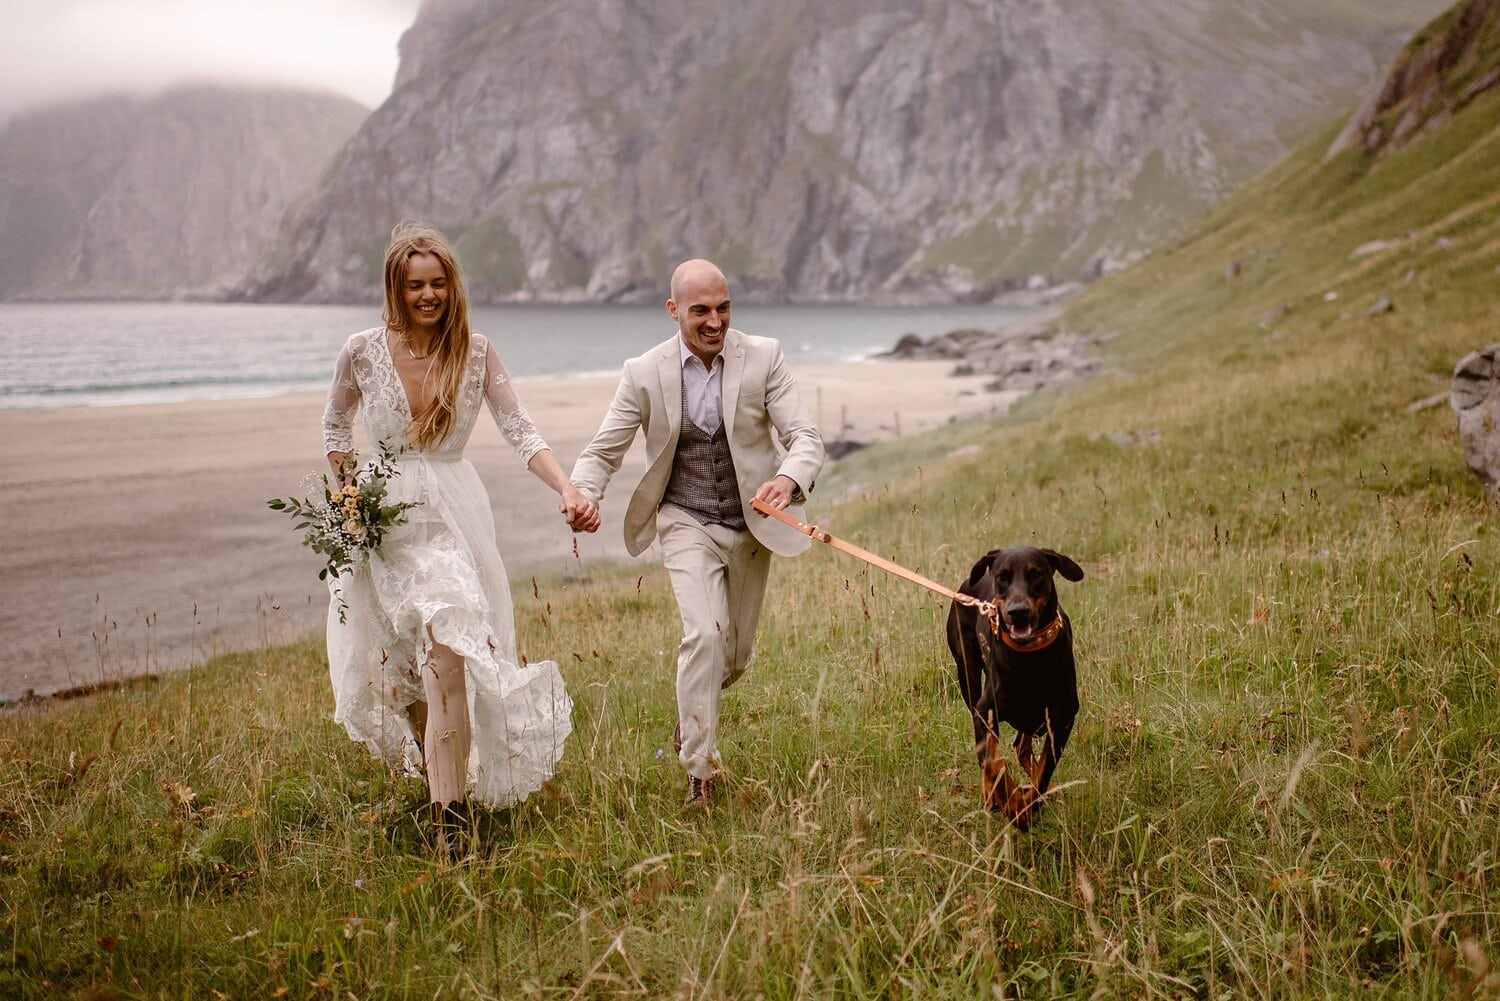 Bride and groom walk hand in hand with their dog on their wedding day in Norway.